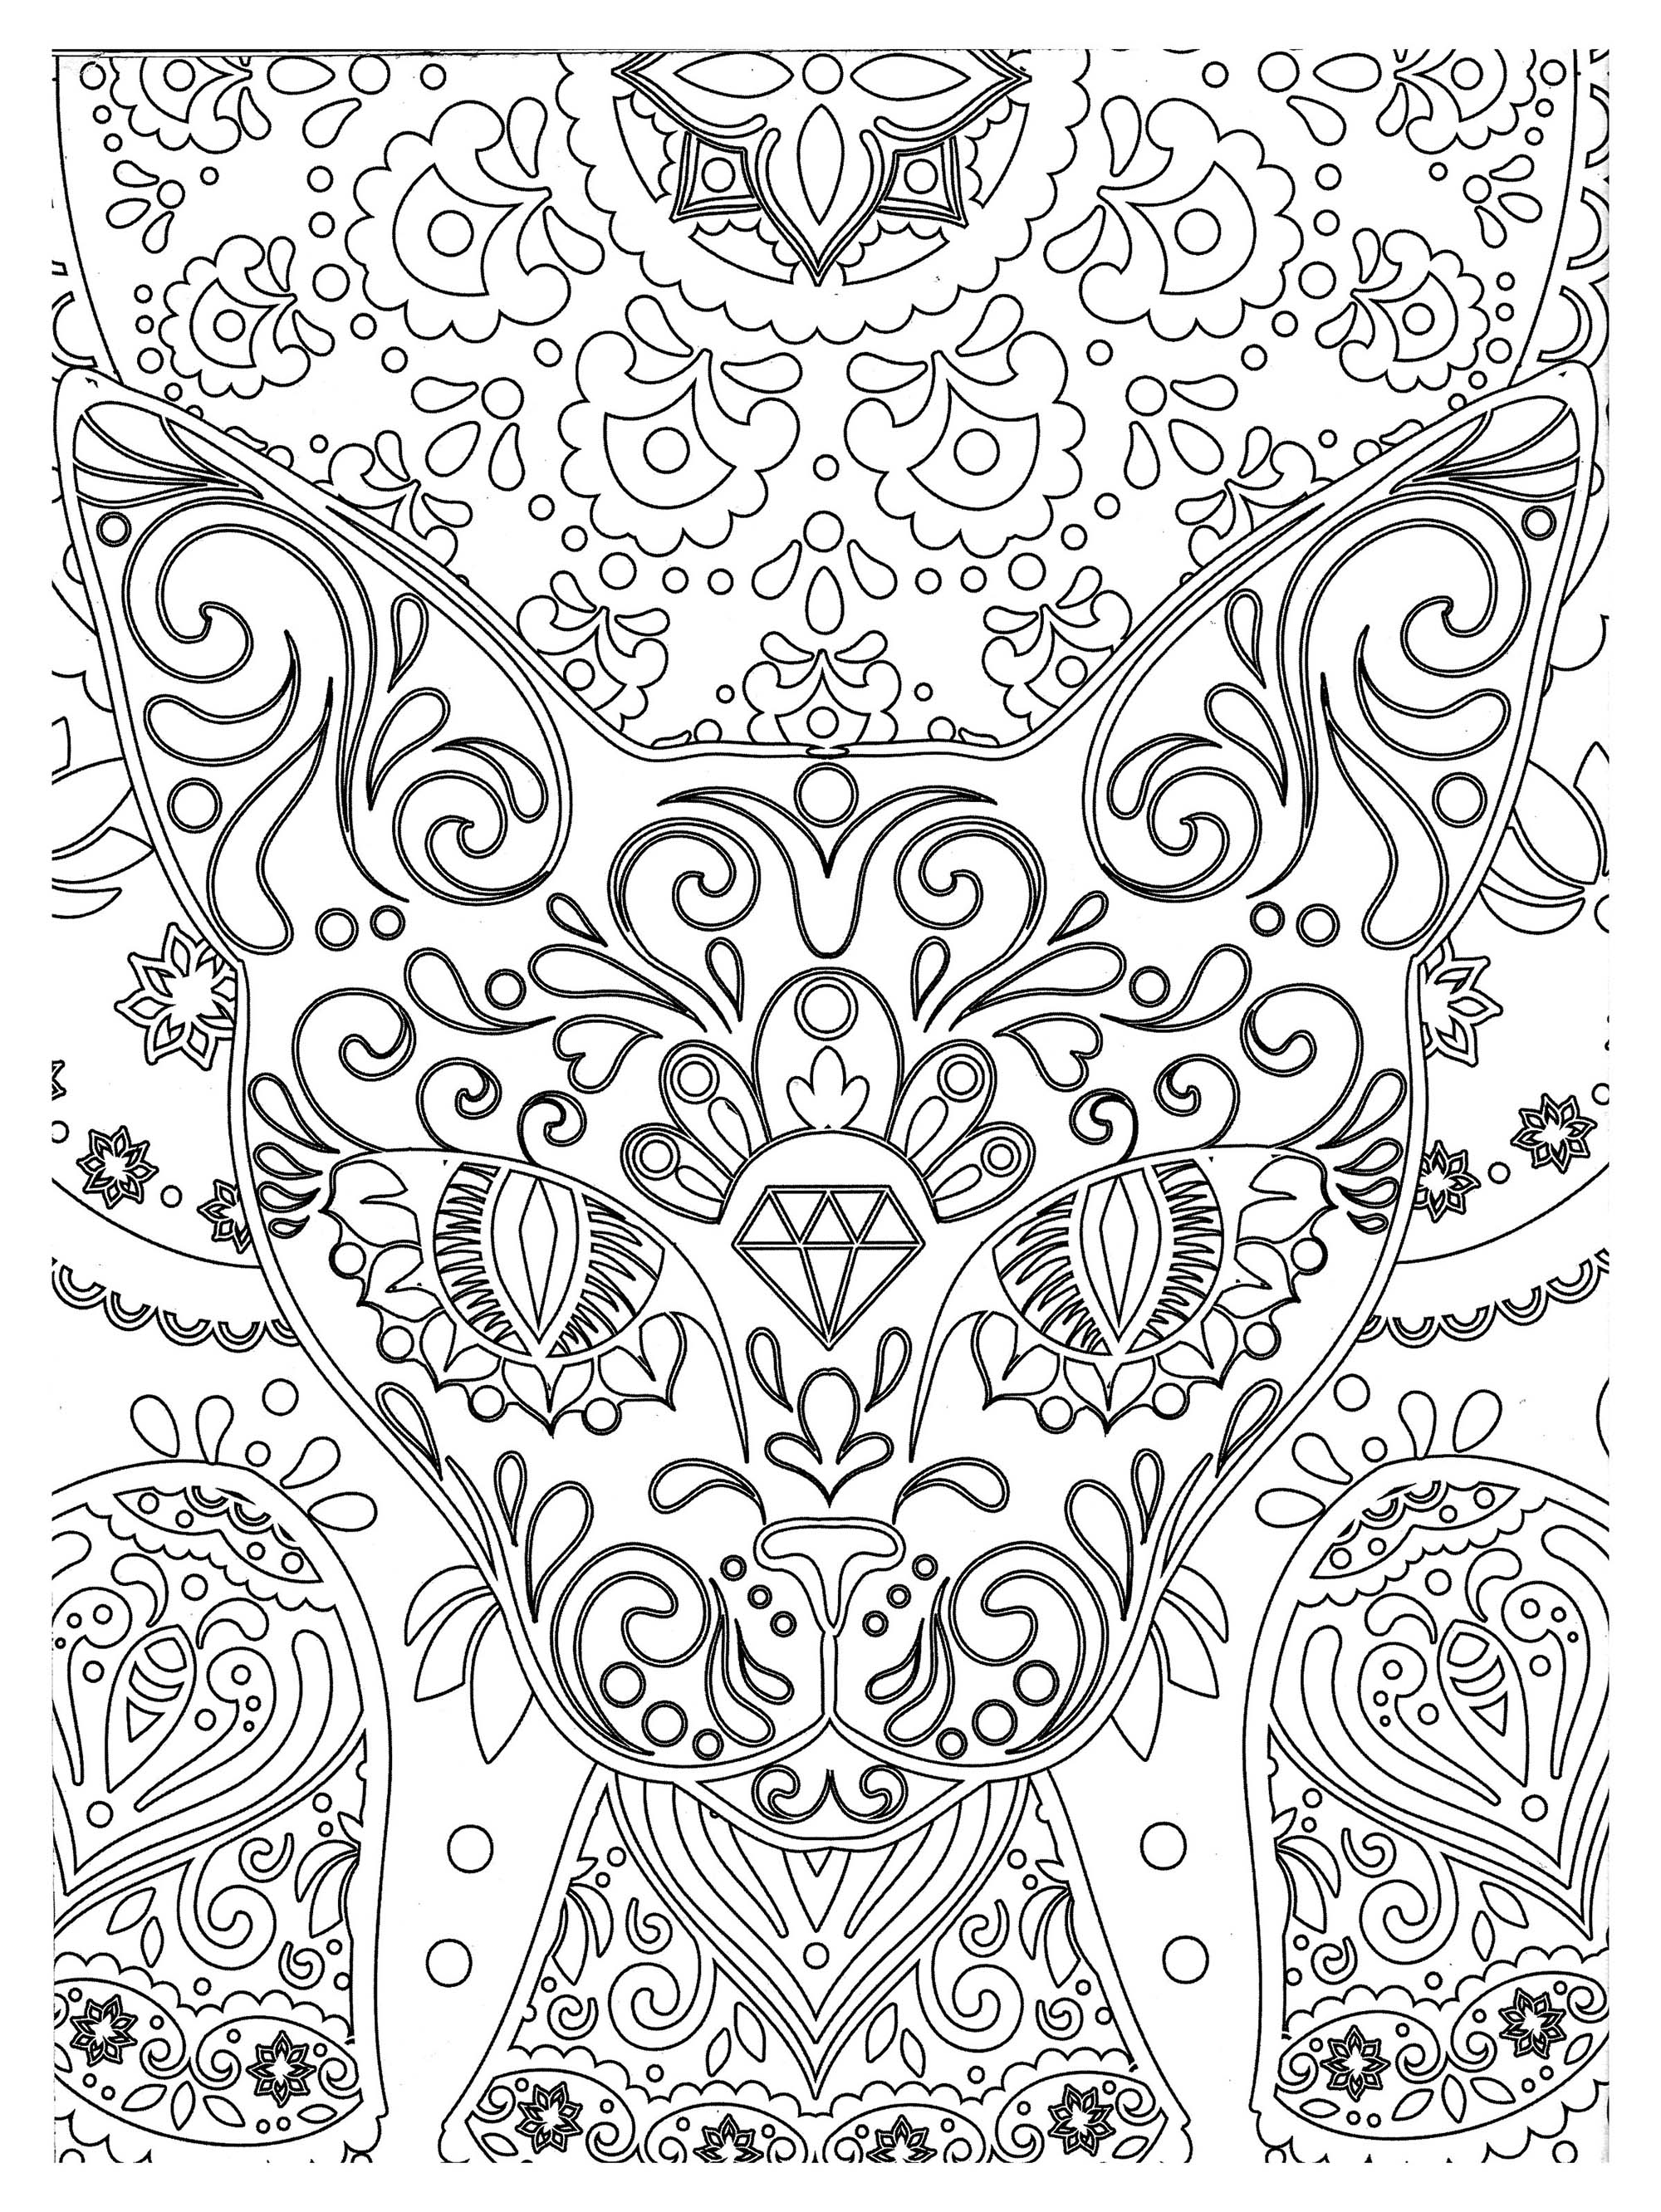 Simple Cat coloring page to download for free : Cat head and elegant patterns